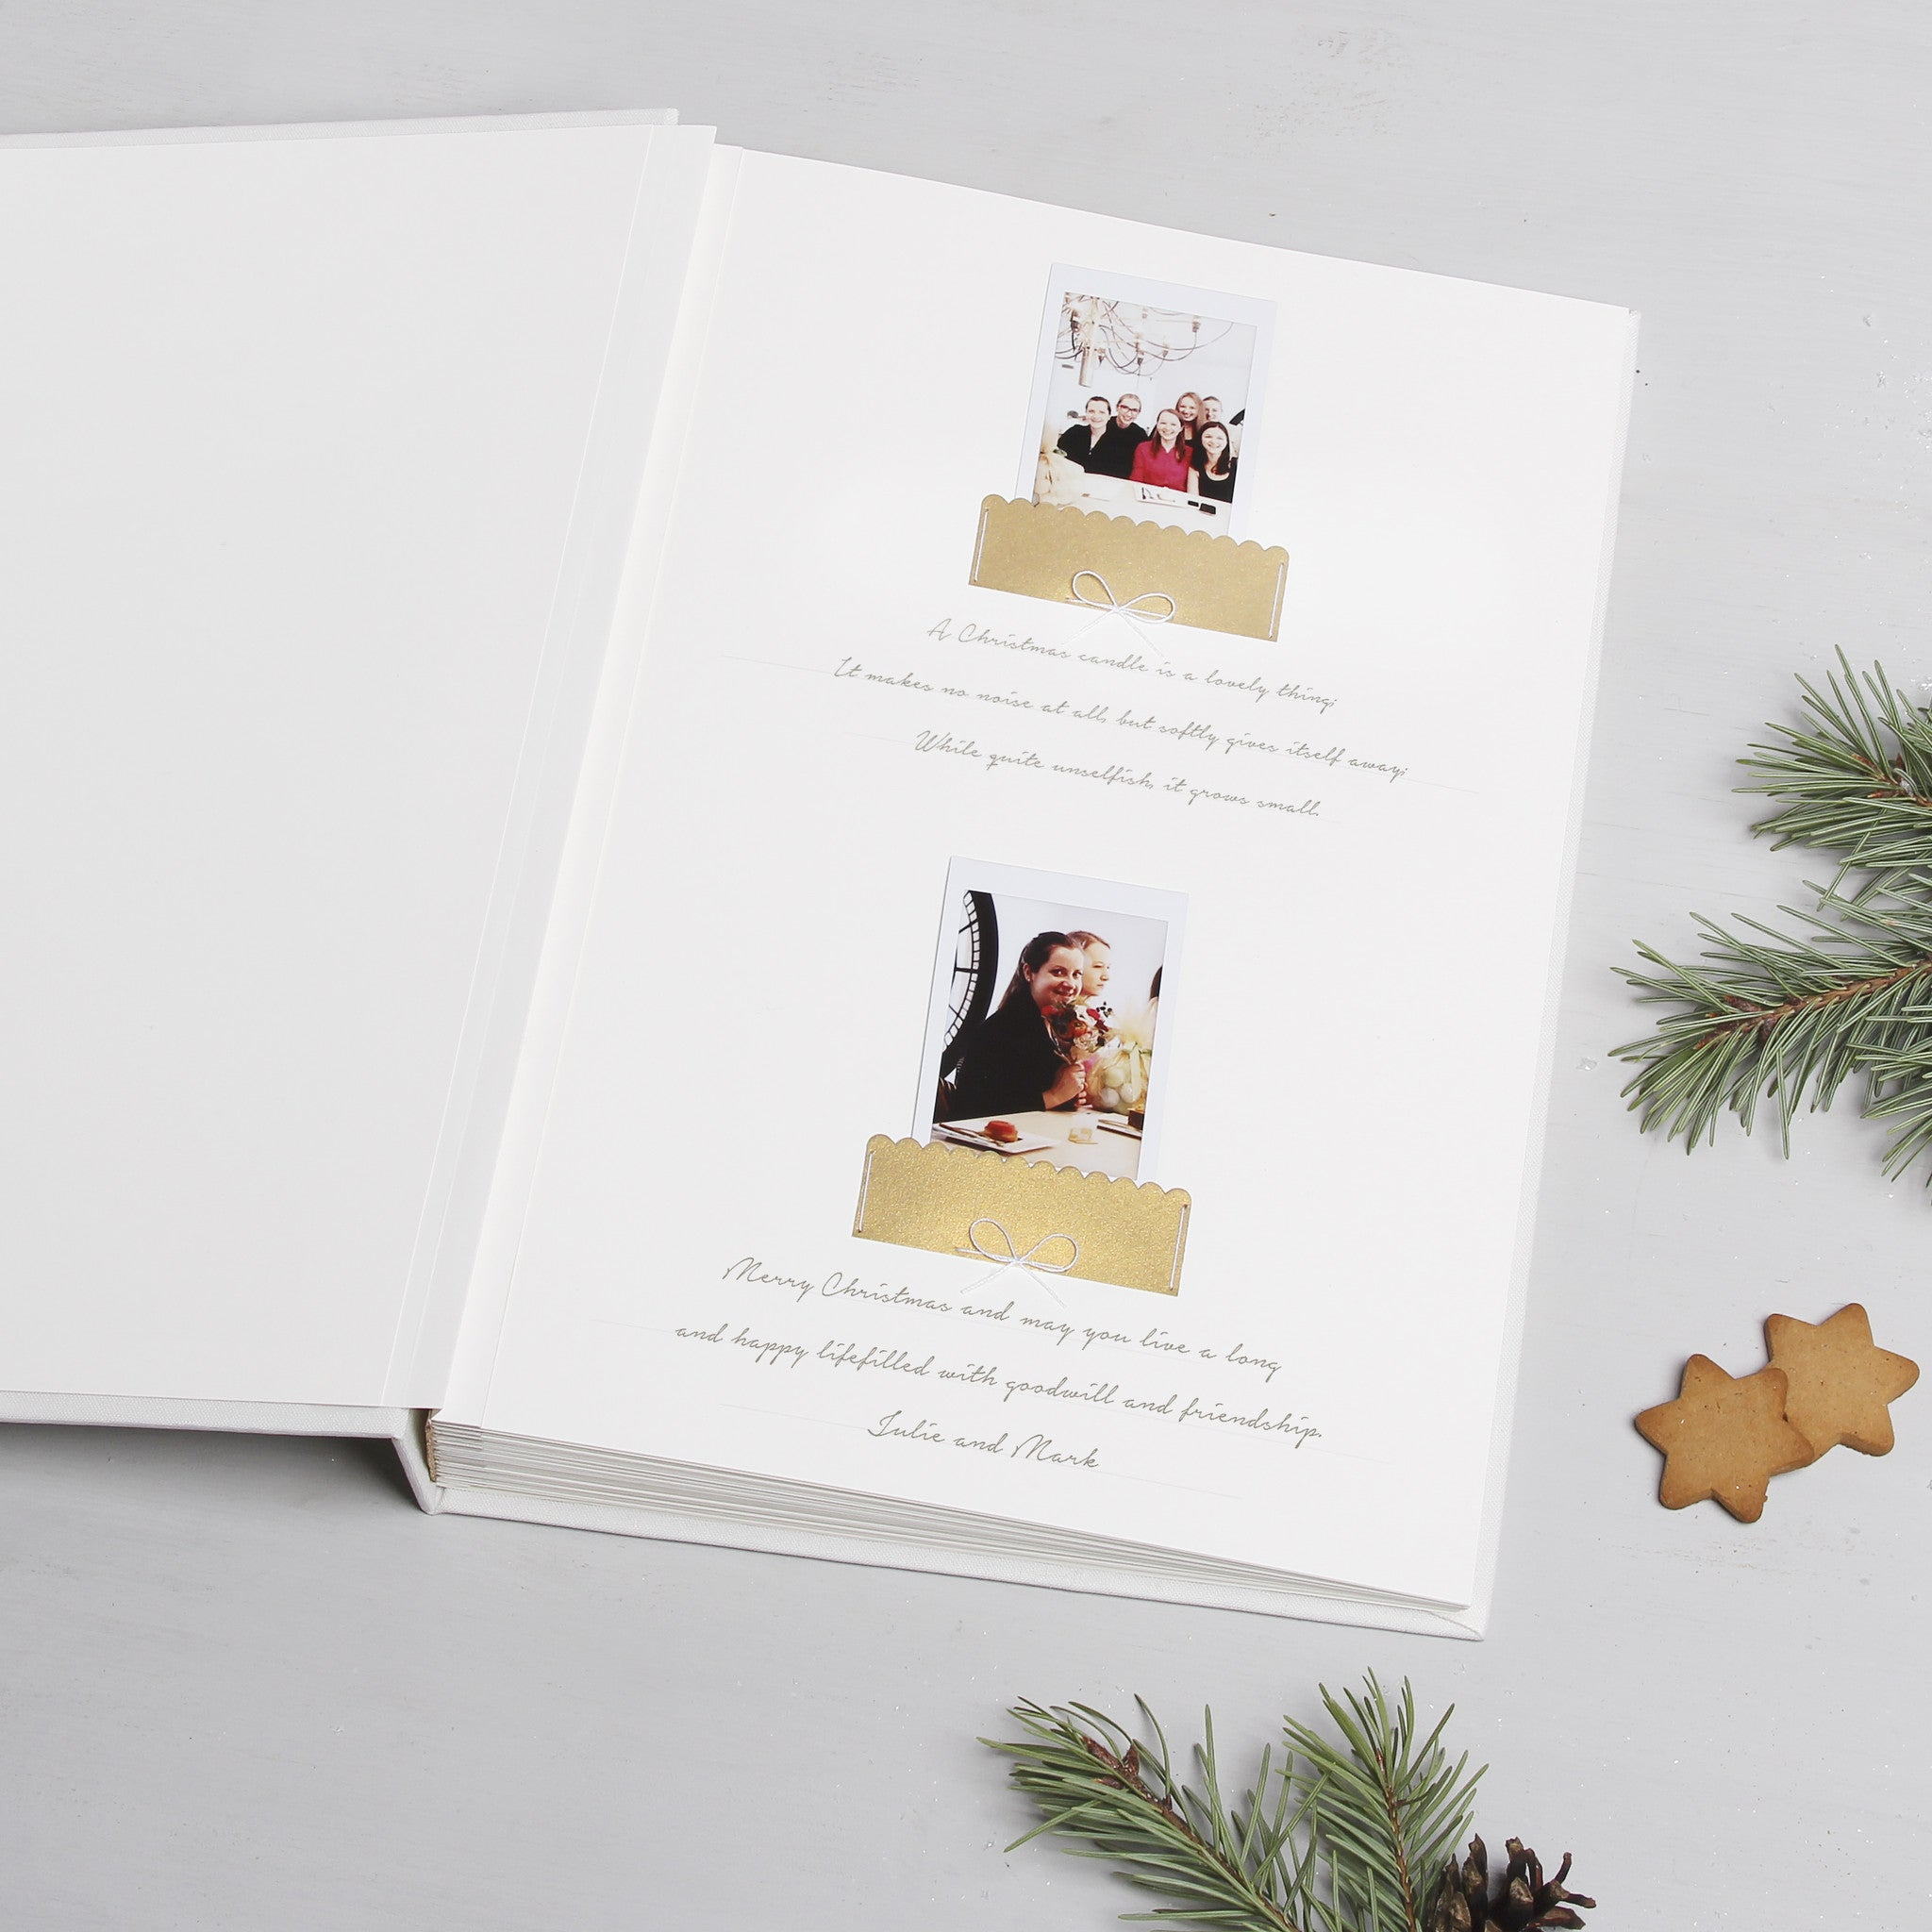 Christmas White Guest Book Photo Album with Gold Lettering by Liumy - Liumy